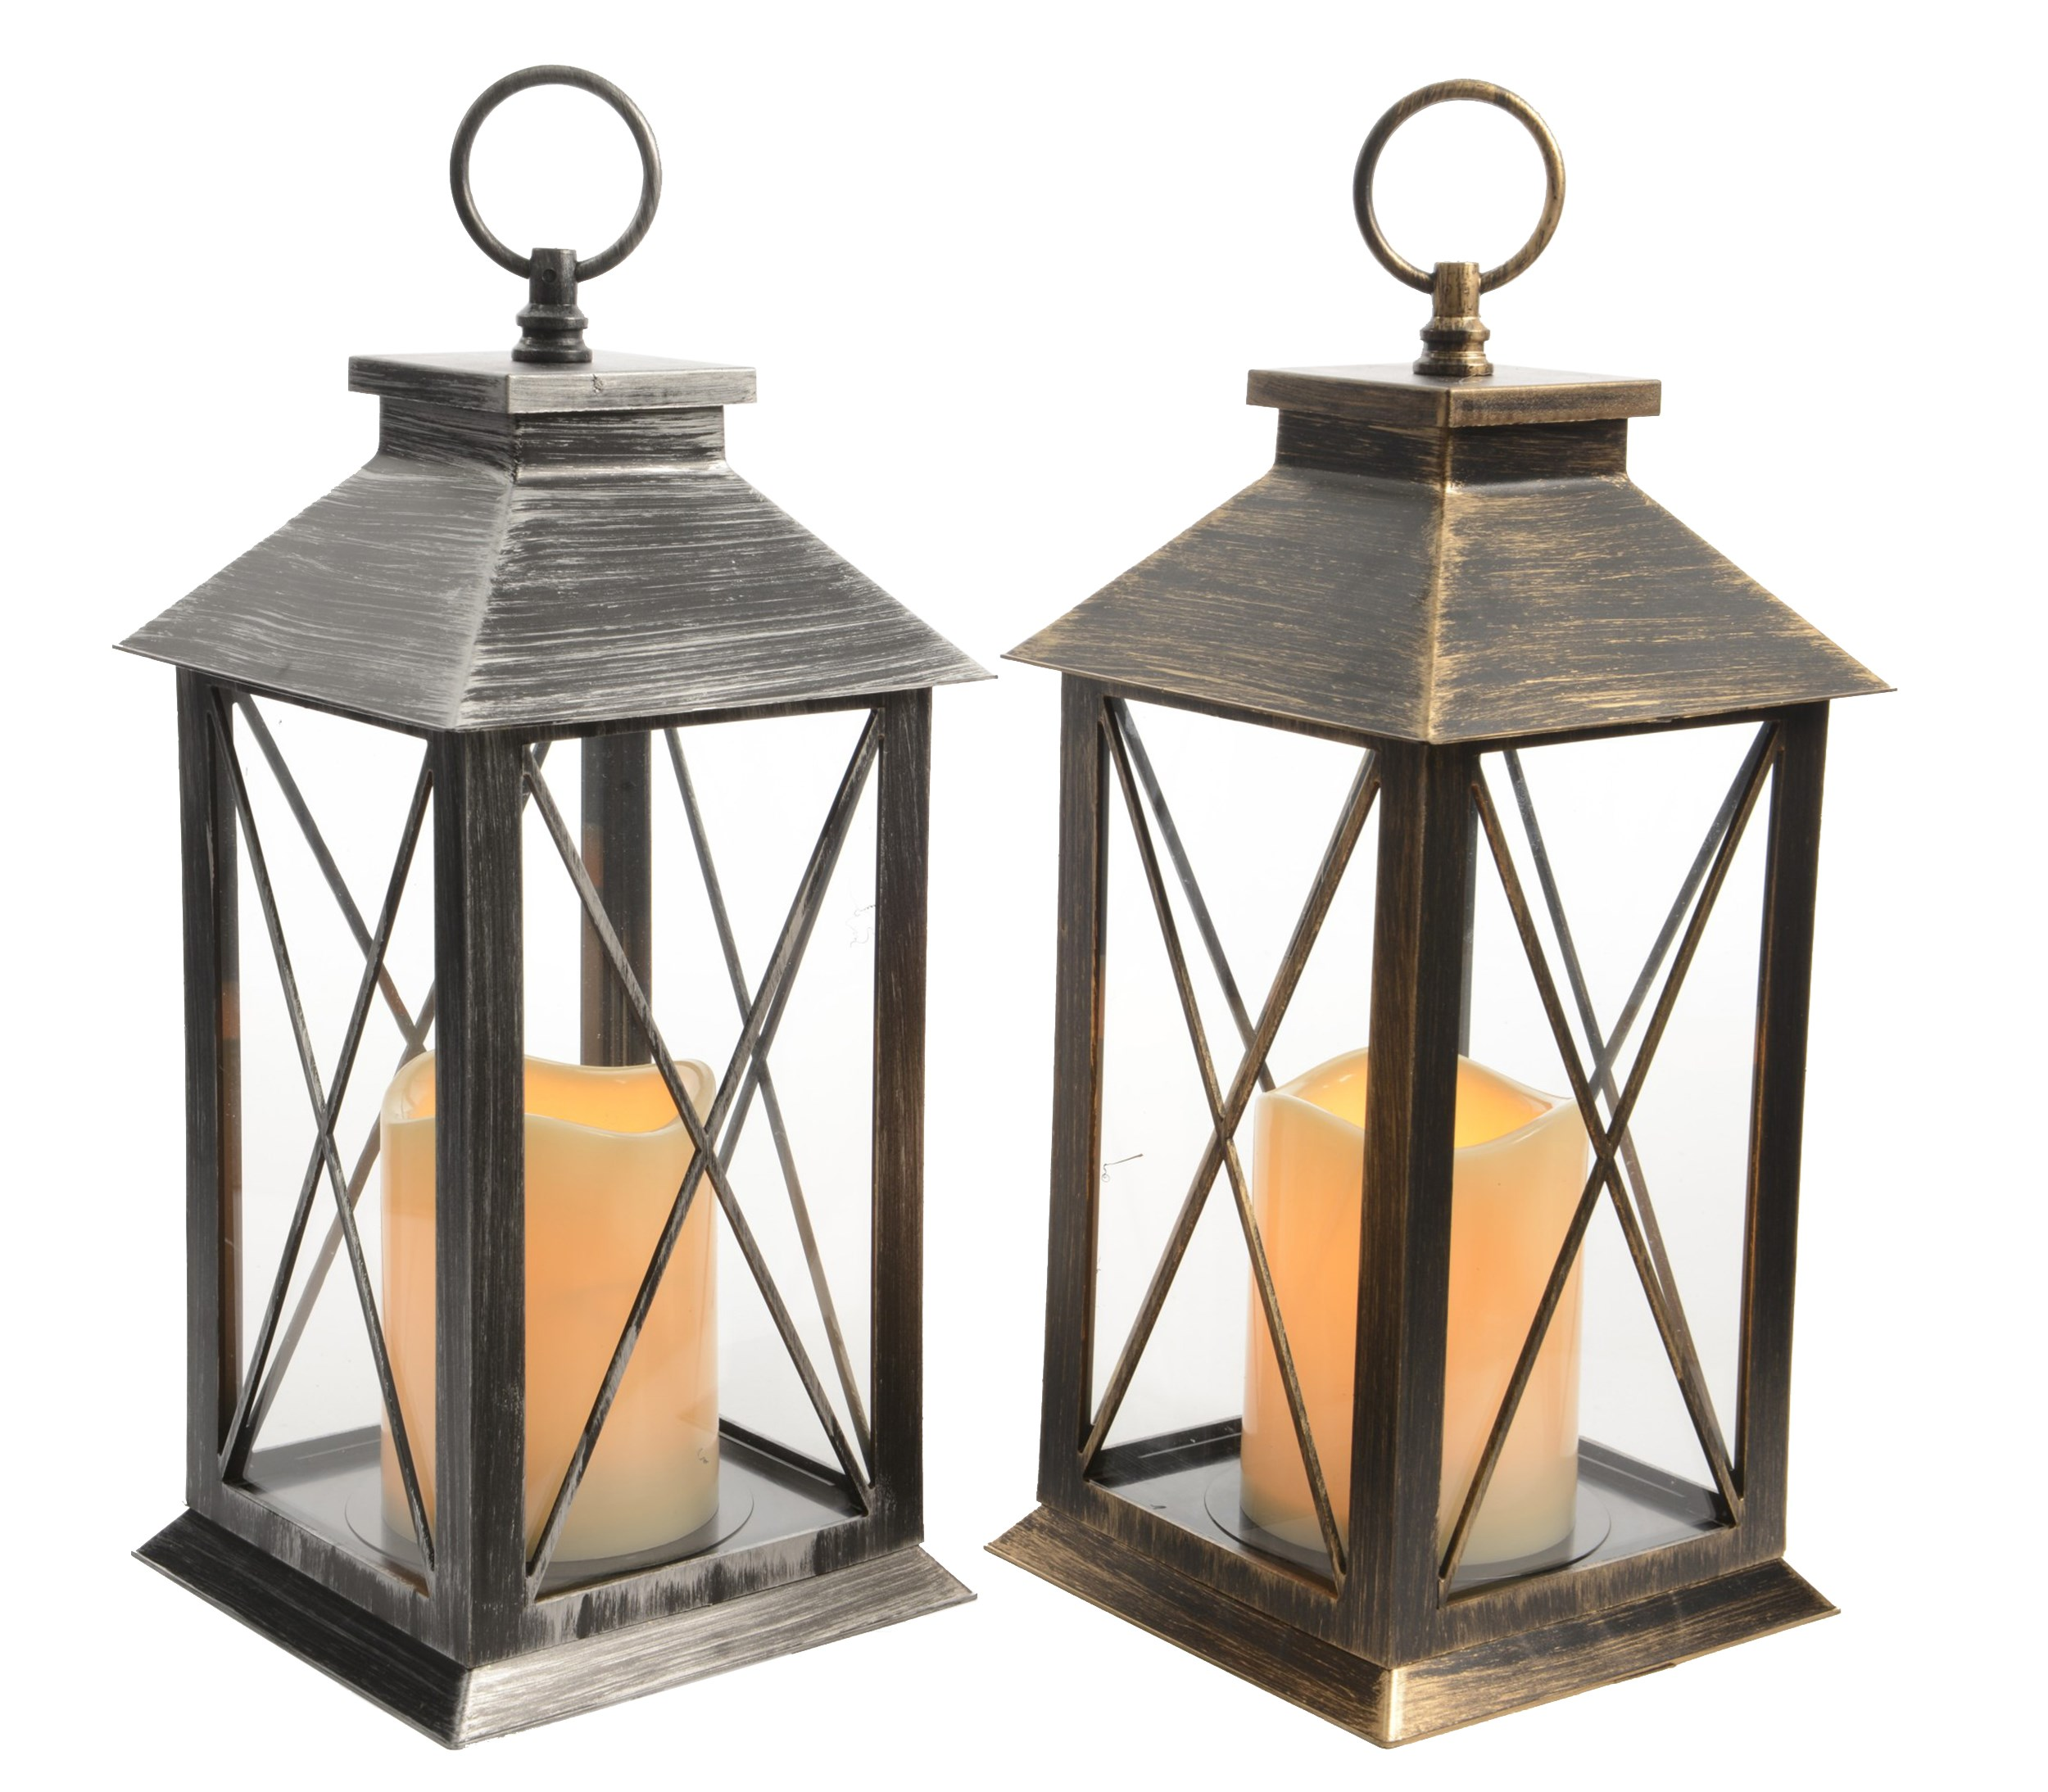 Kaemingk  Traditional Lantern with LED Candle & Timer - Antique Silver